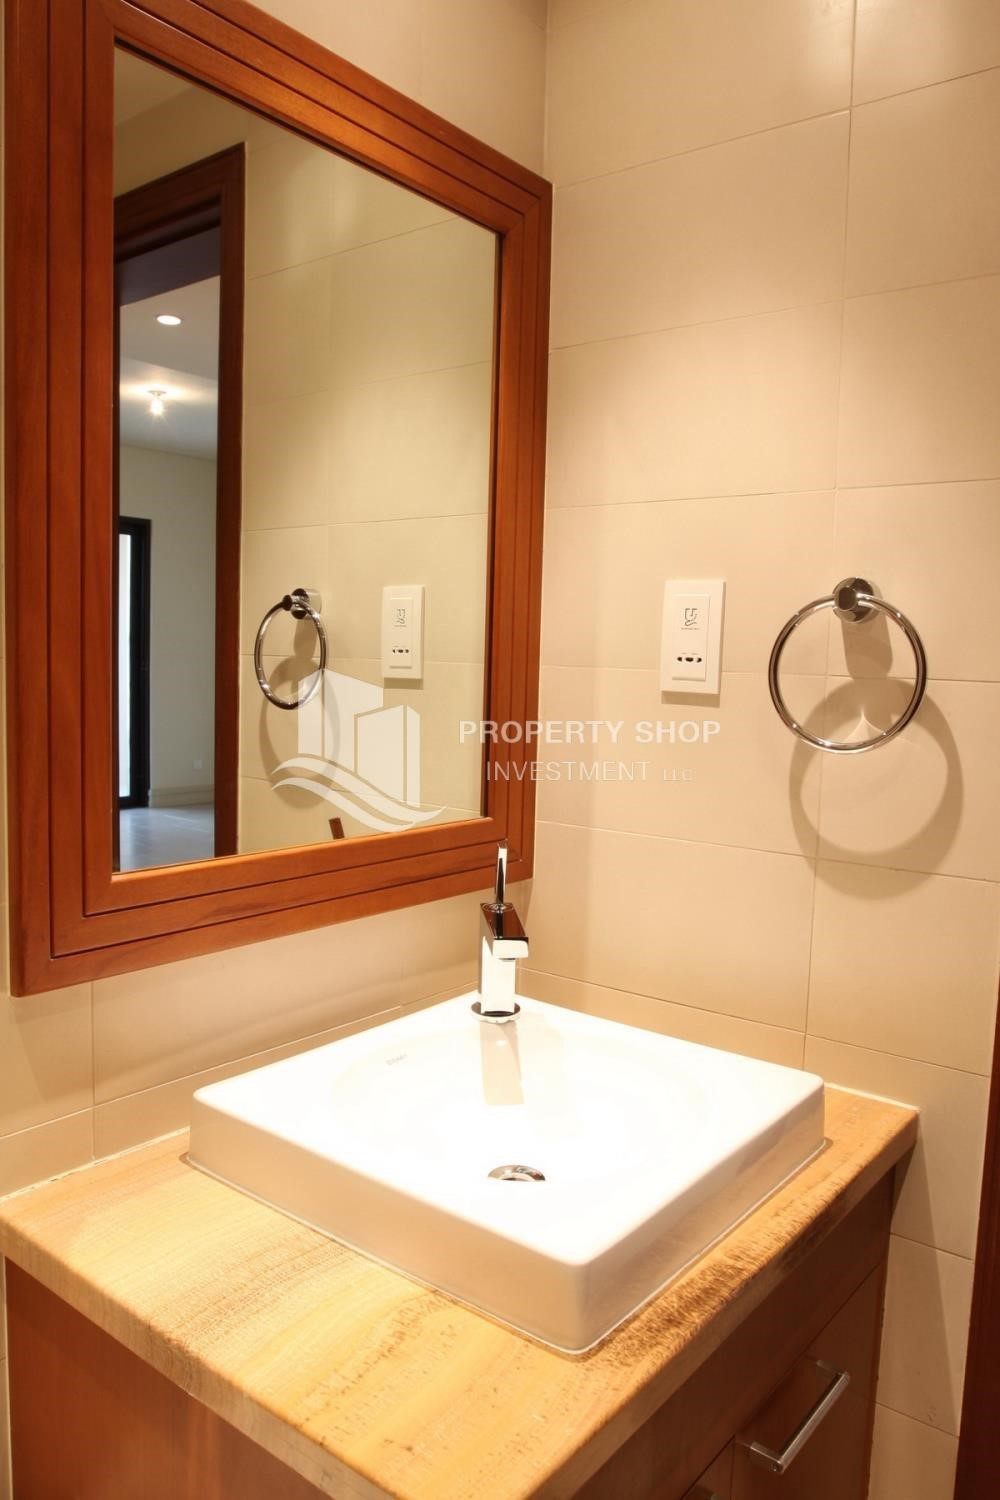 Bathroom - Exclusive Property in Saadiyat Island, 1BR Apt Available for rent!